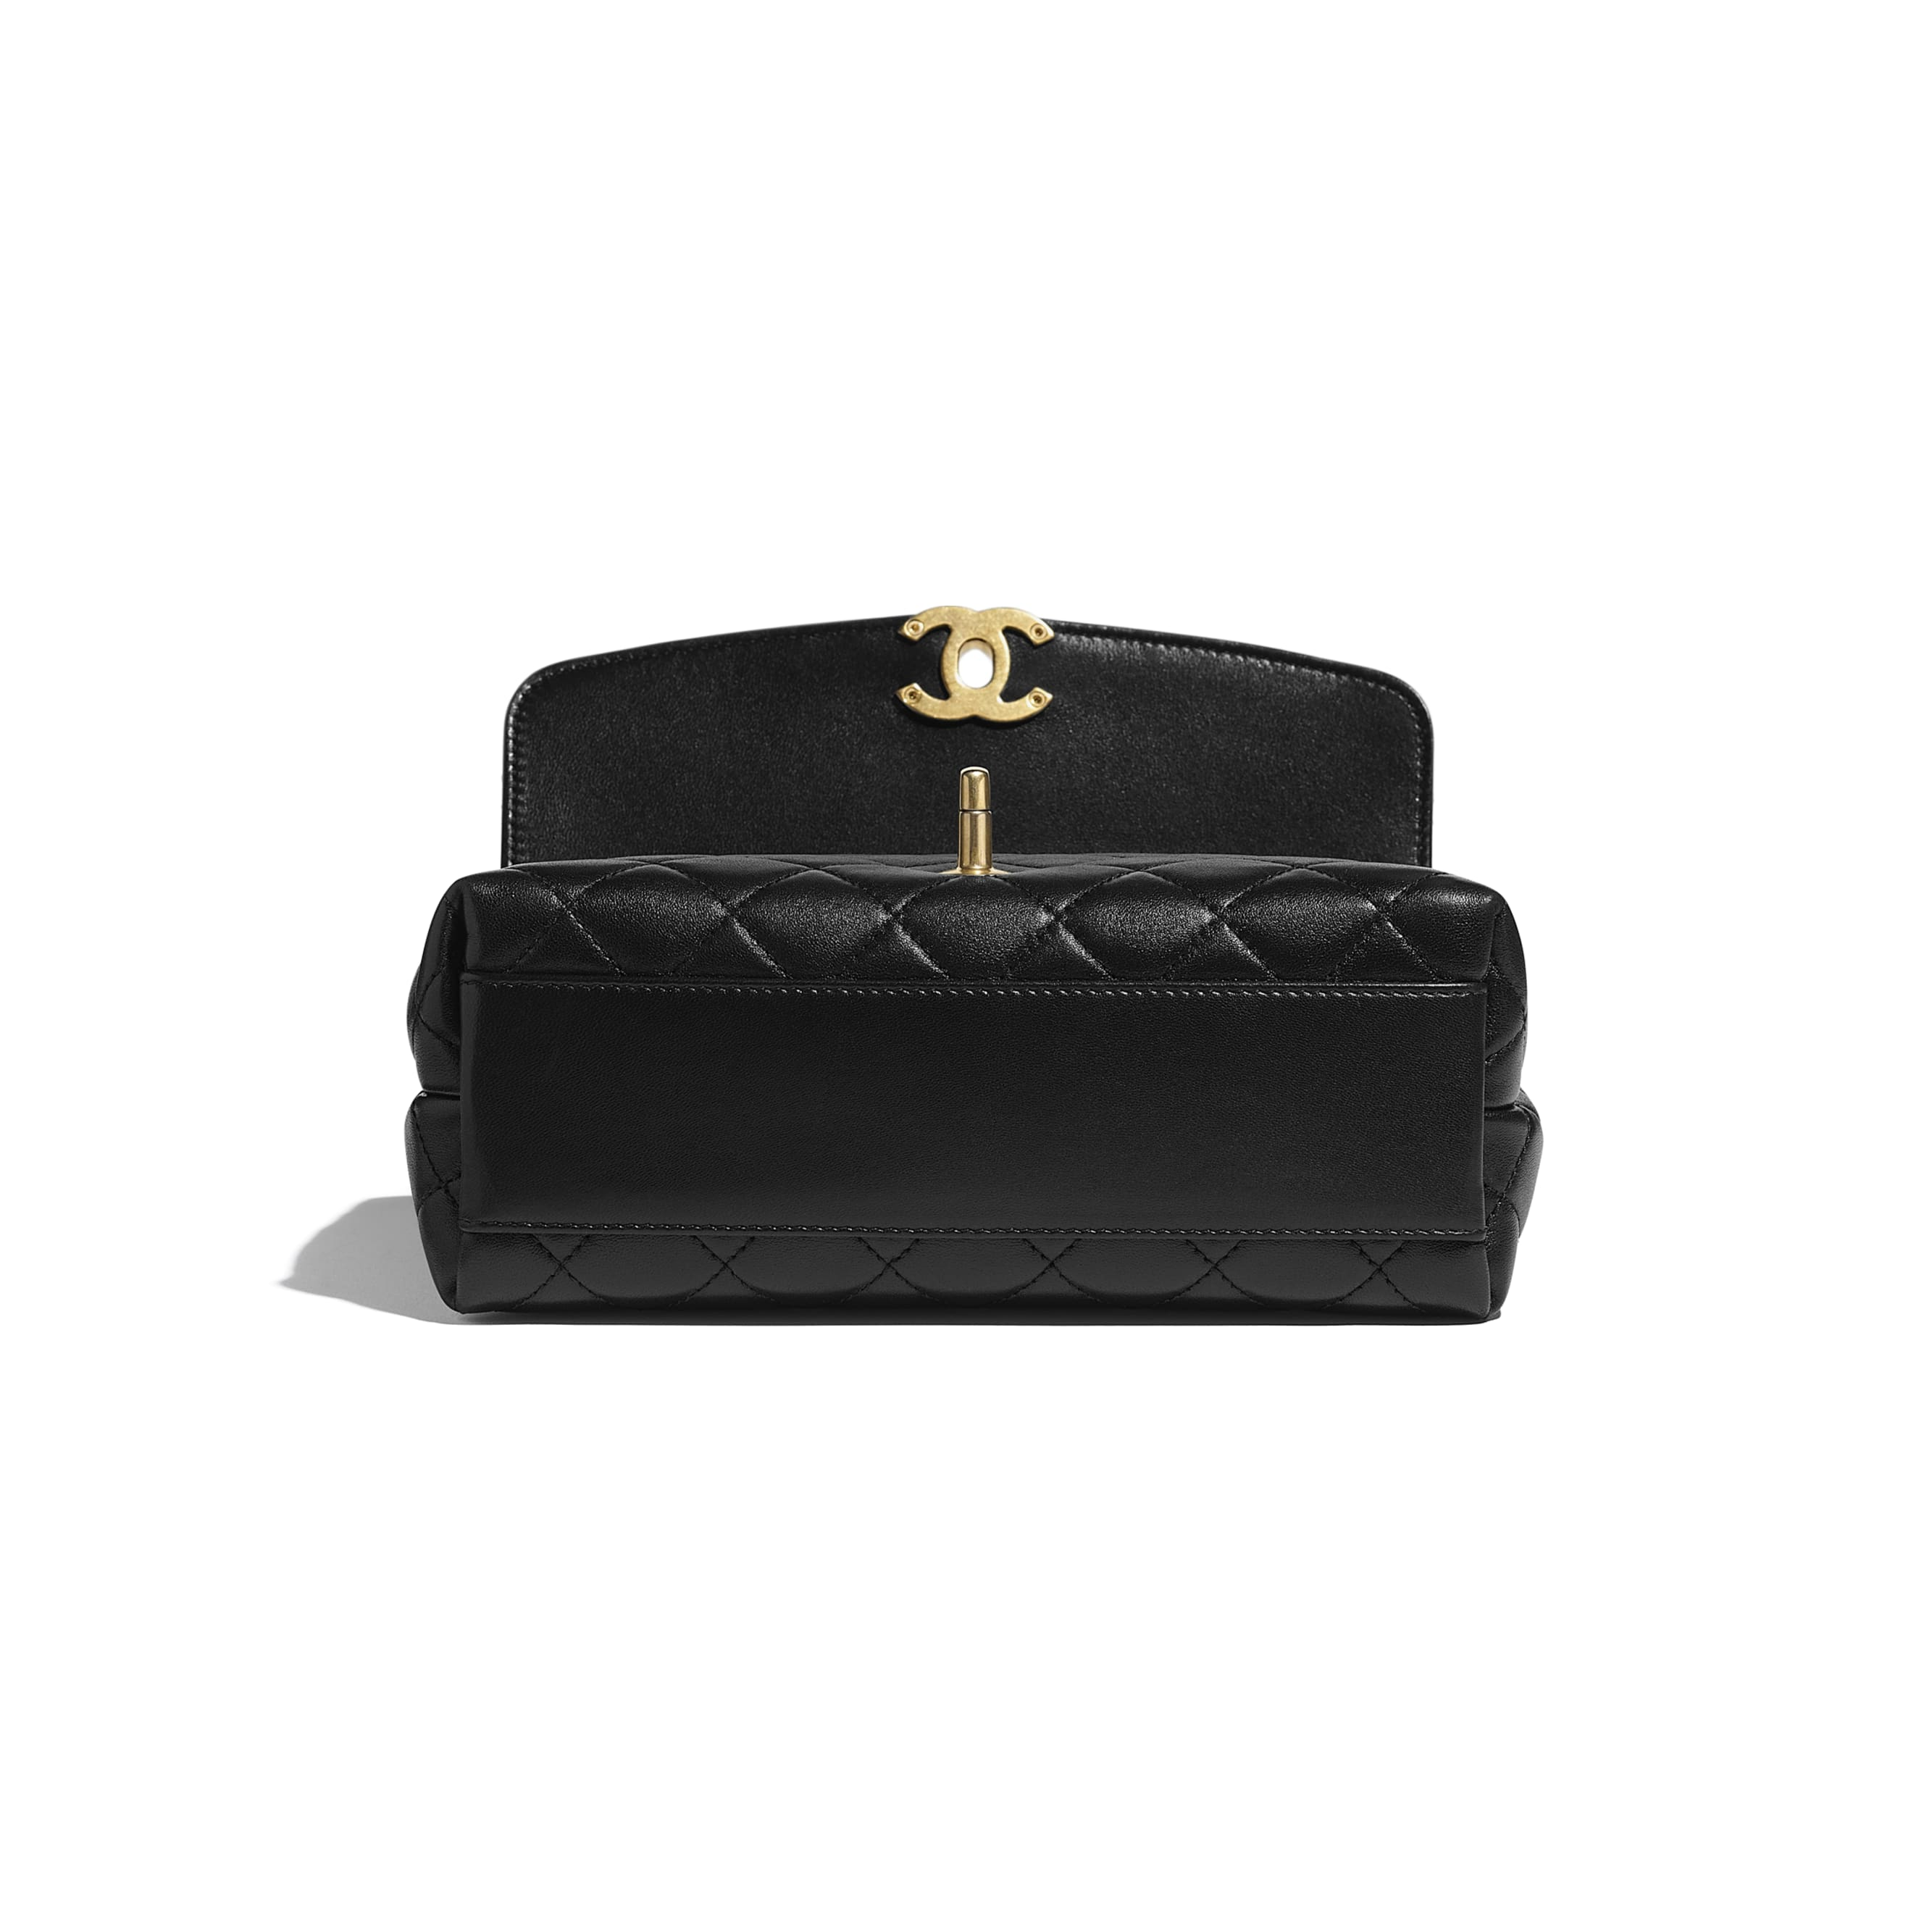 Small Flap Bag with Top Handle - Black - Lambskin, Gold-Tone & Ruthenium-Finish Metal - CHANEL - Extra view - see standard sized version